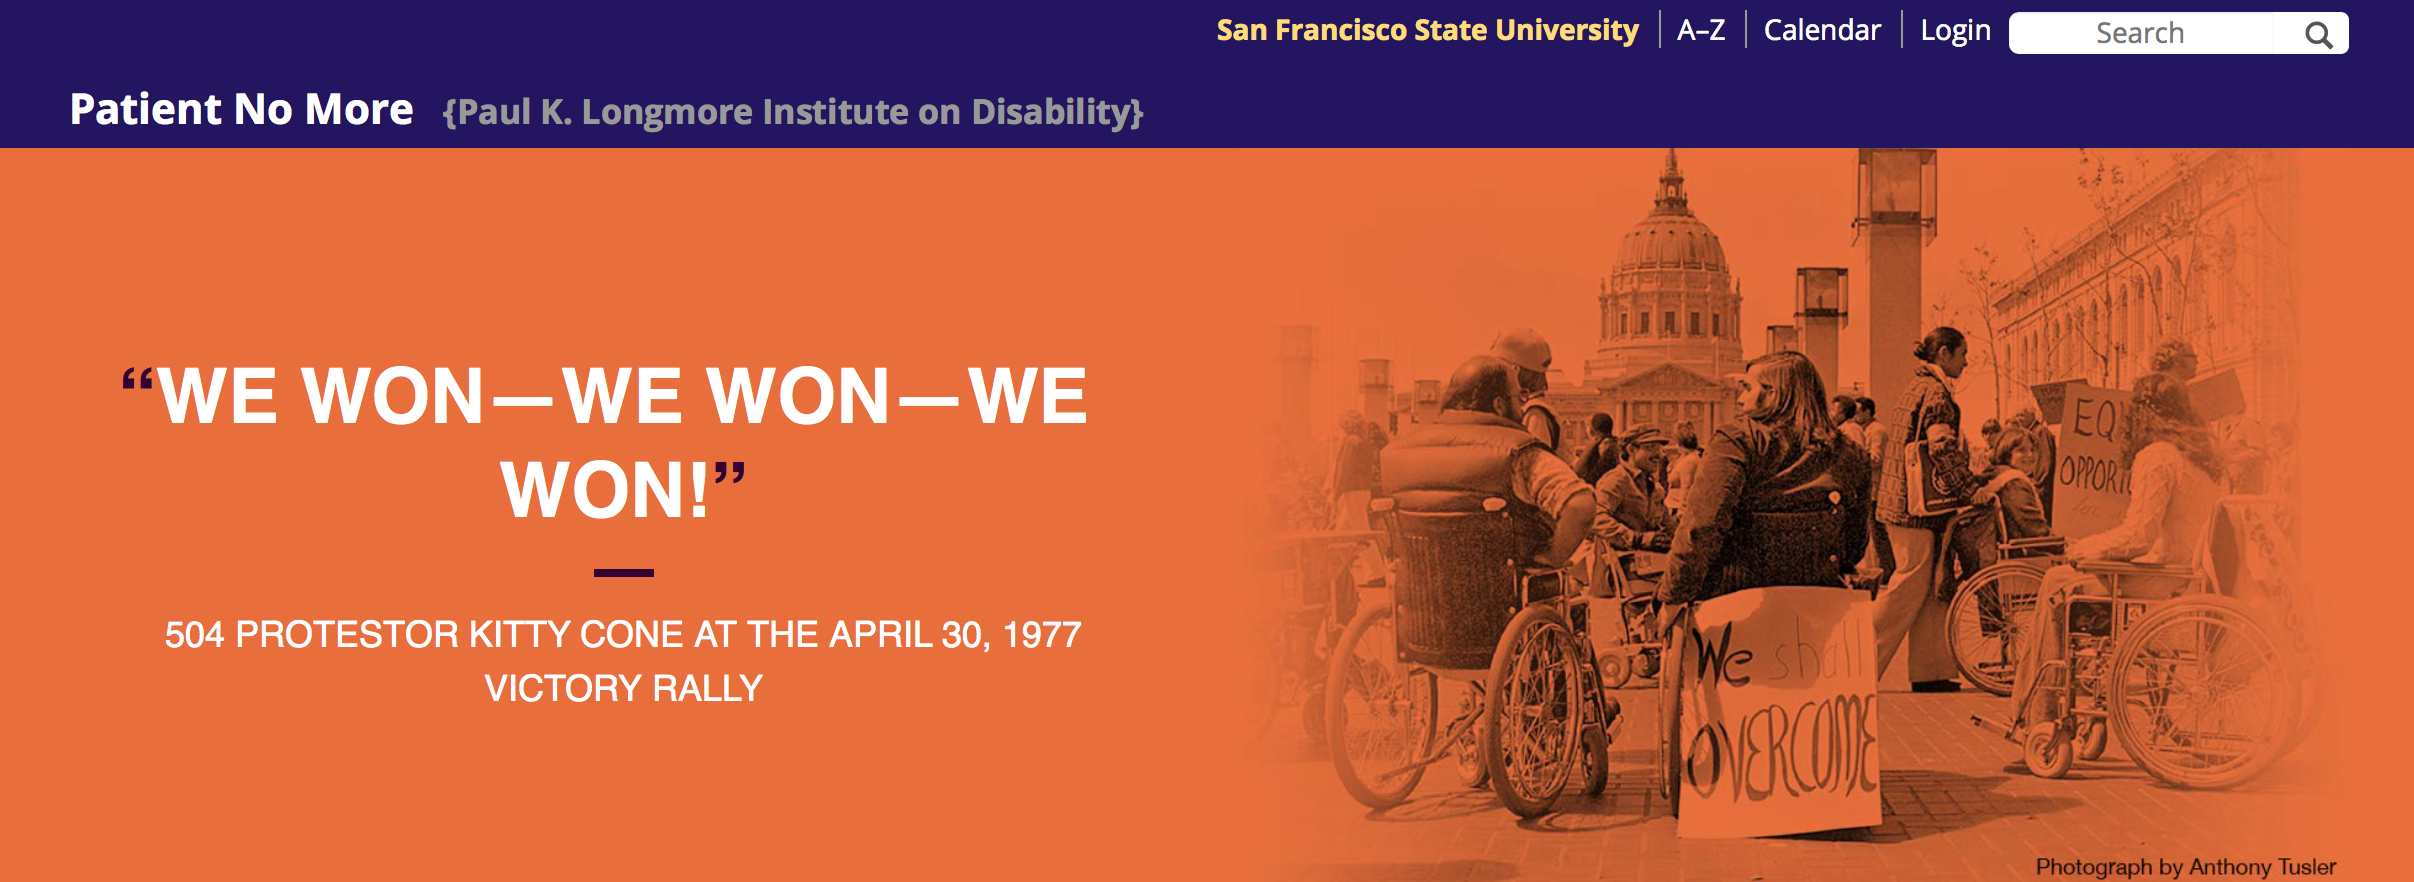 "Website screenshot with the quote ""We won — we won — we won!"" on the left and an image on the right of protestors with disabilities"